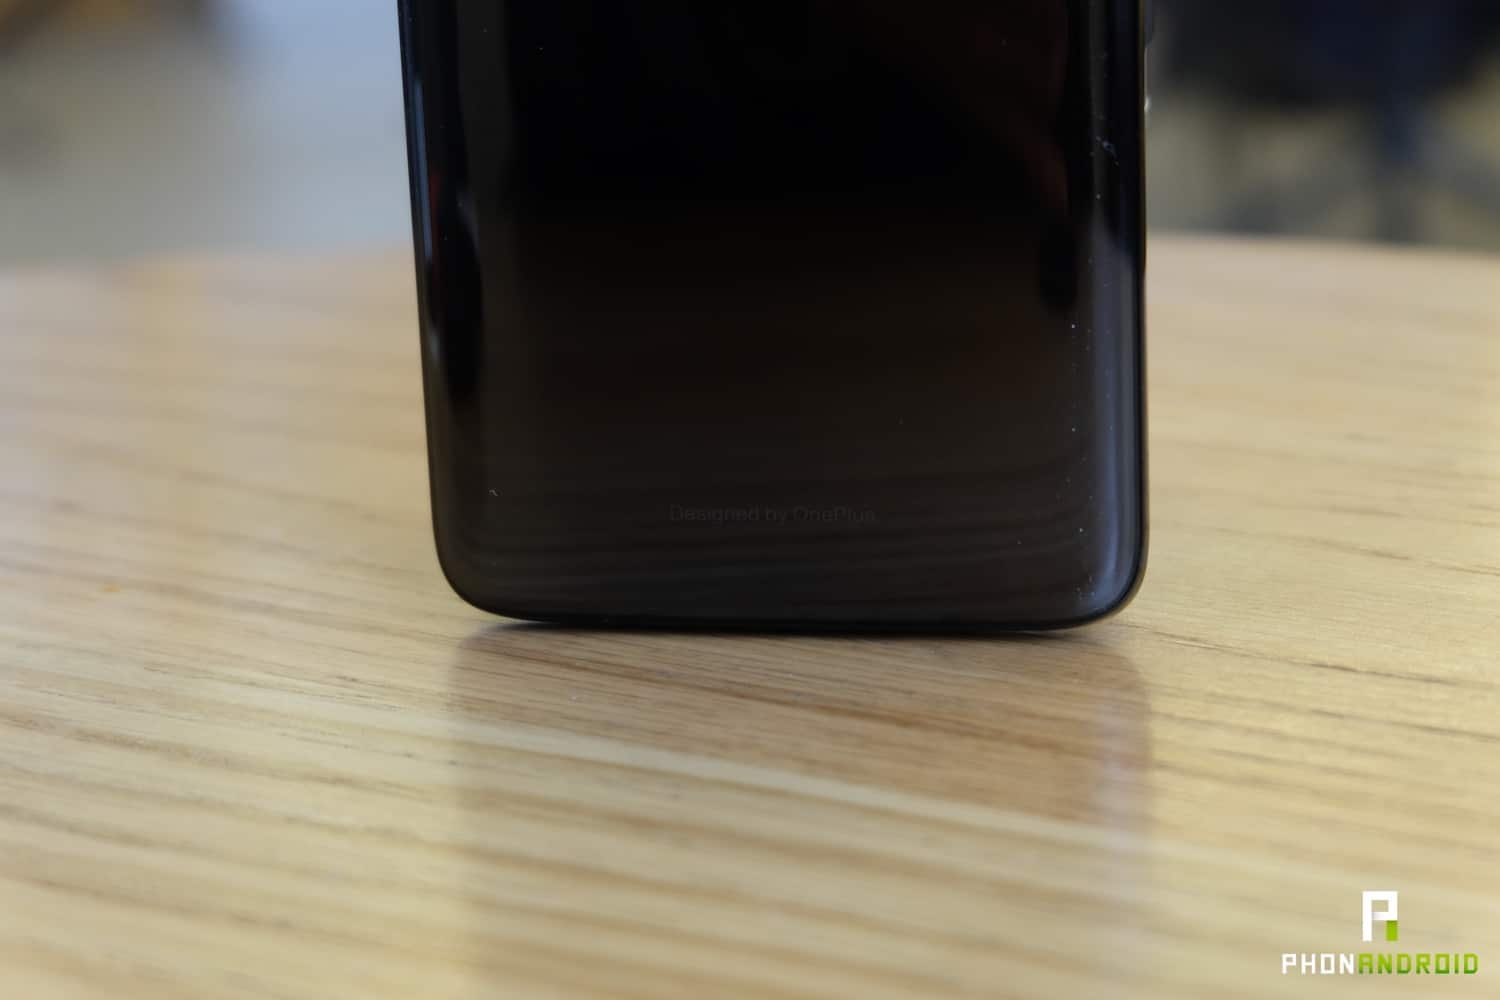 oneplus 6 prise en main designed by one plus